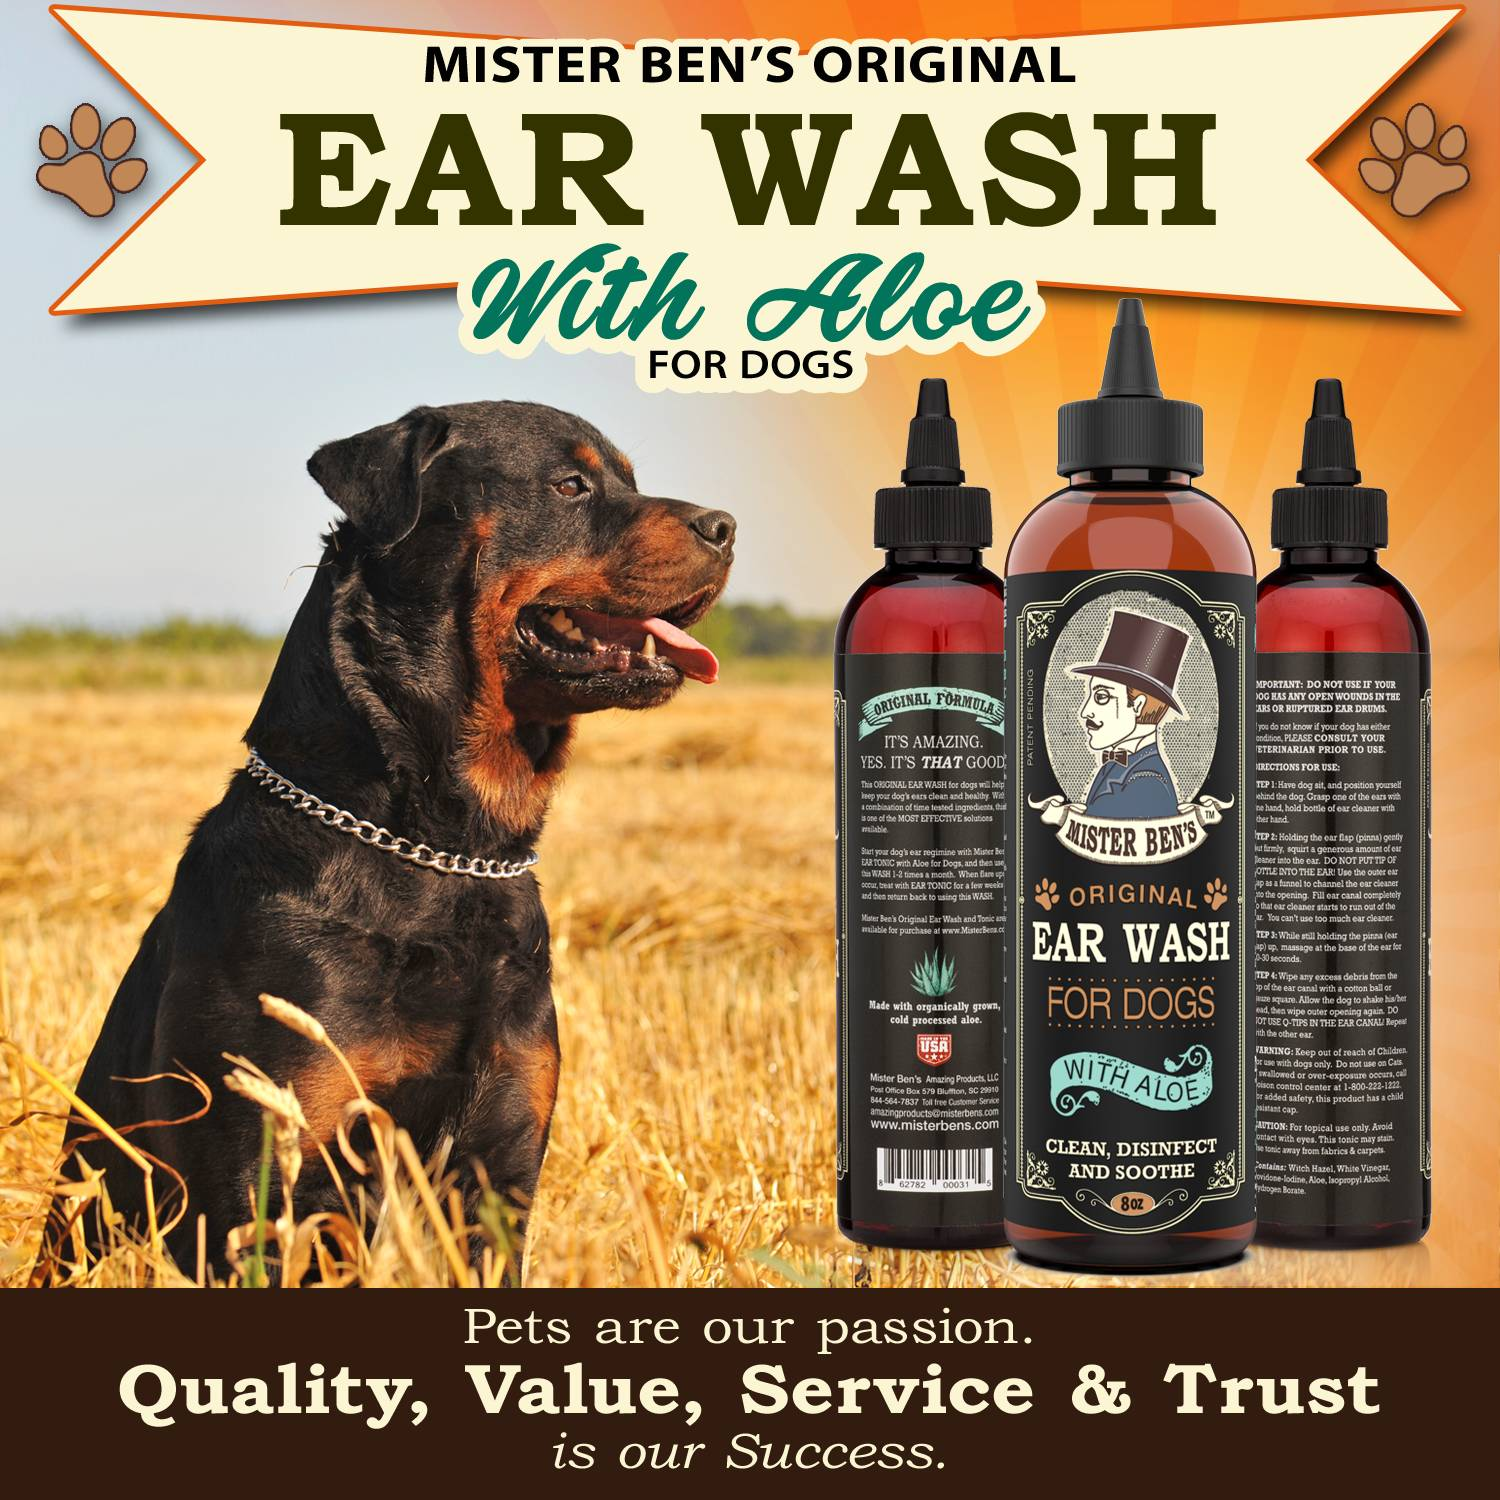 Ear wash for dogs mister bens amazing products ear wash for dogs mister bens amazing products solutioingenieria Image collections